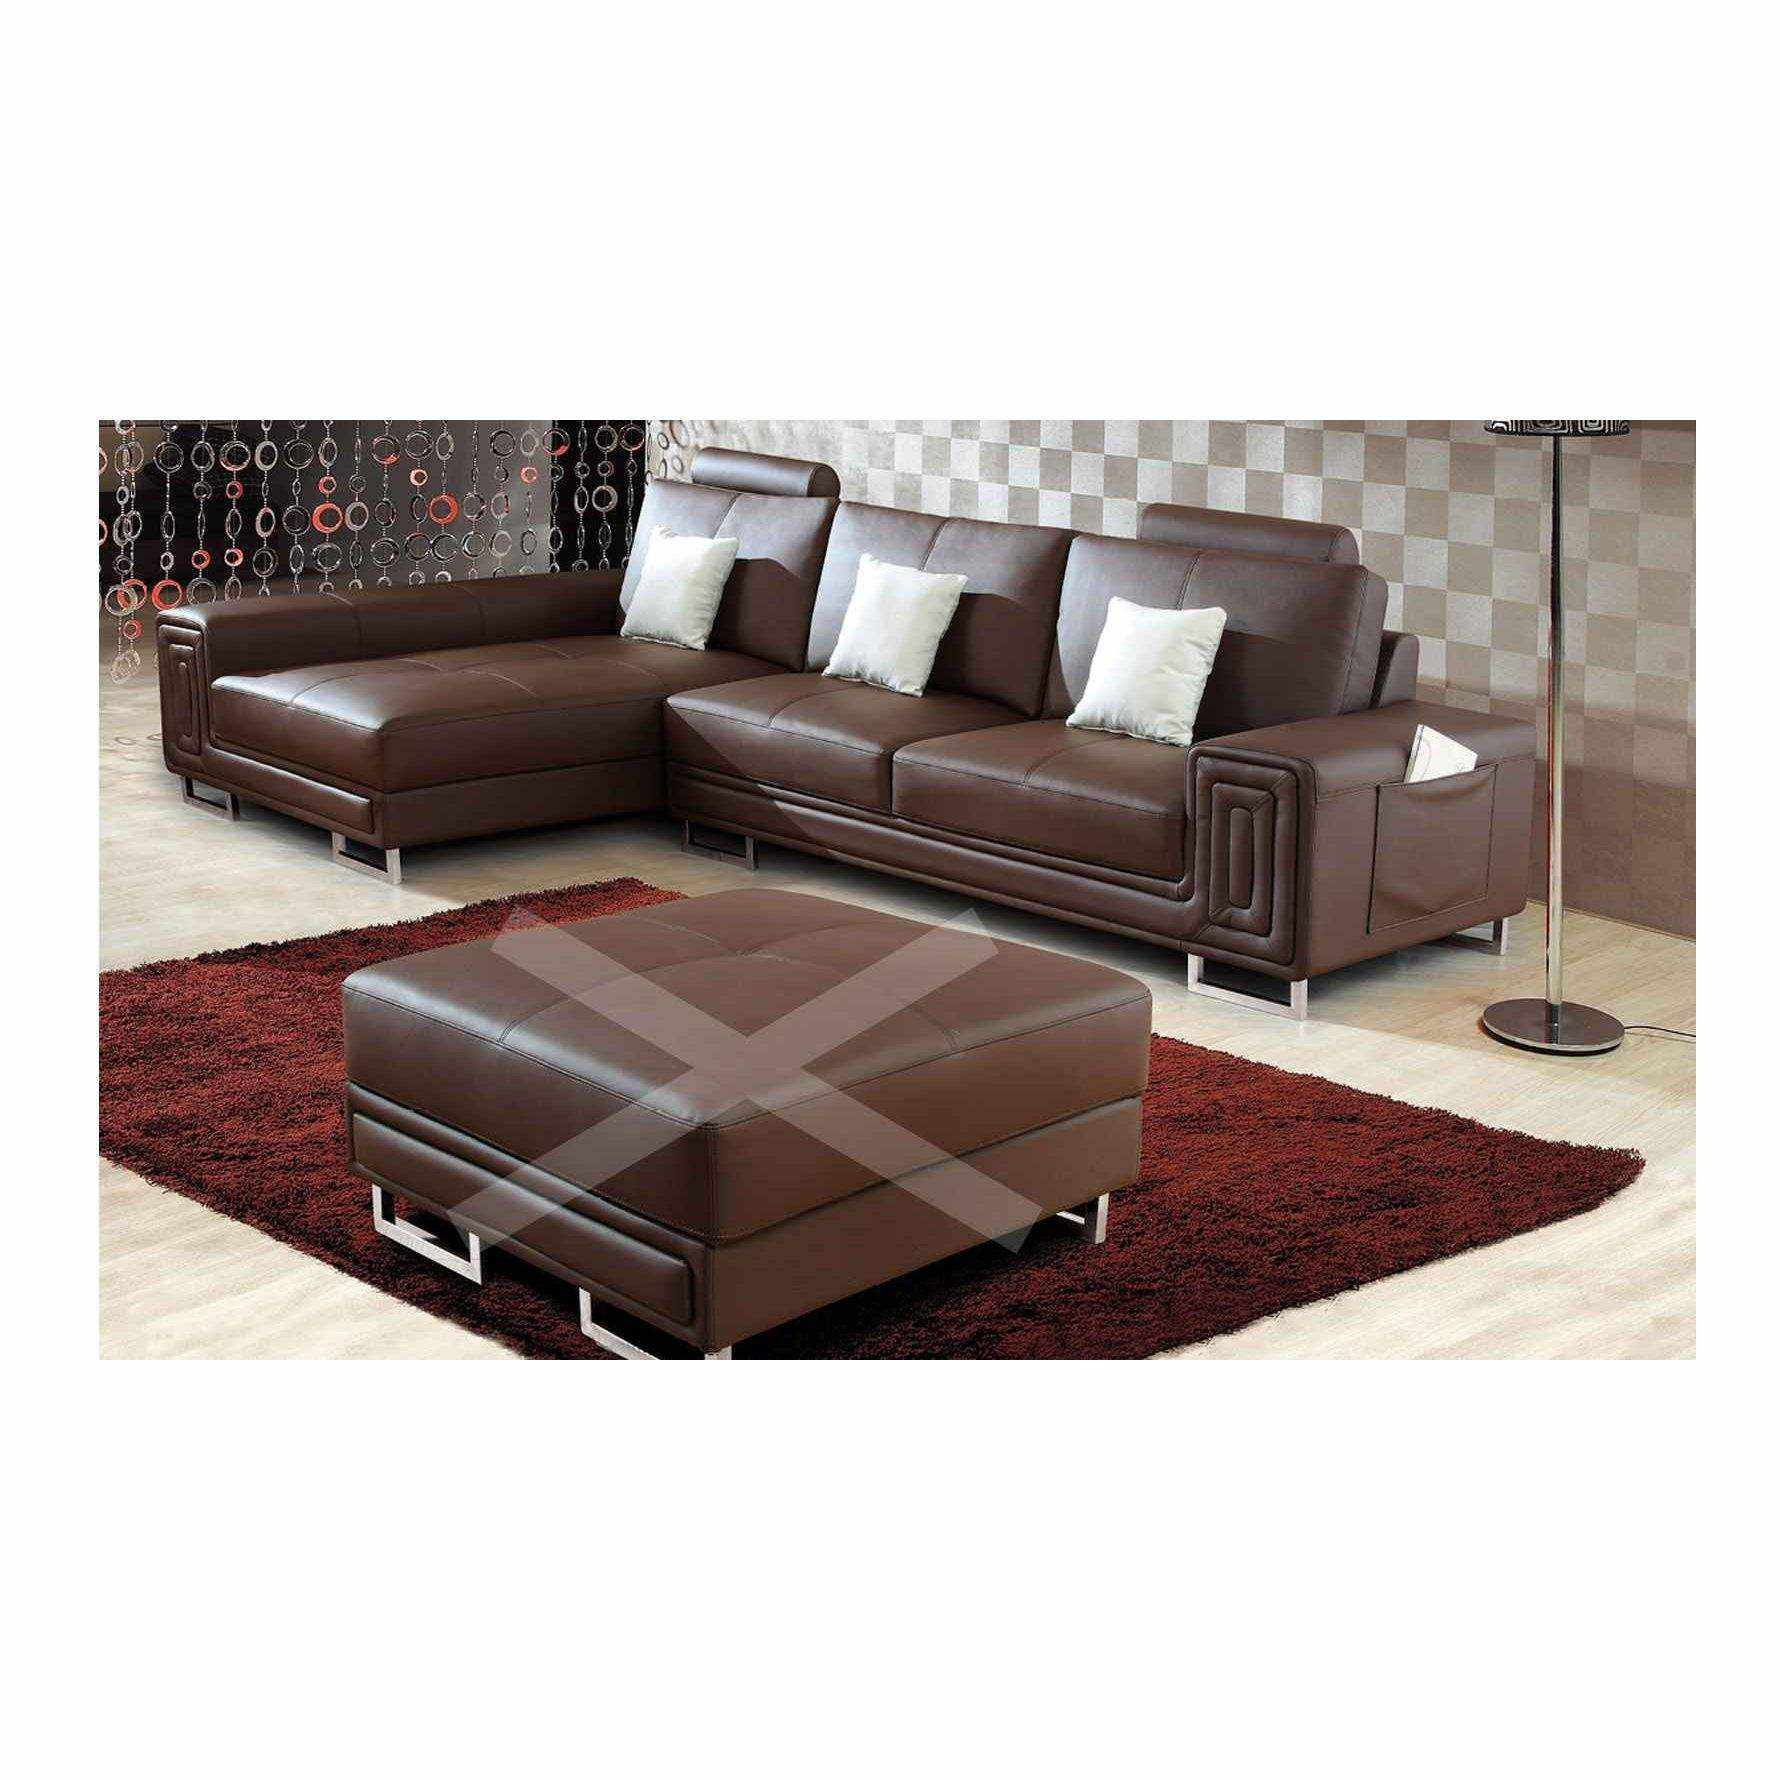 Deco in paris canape cuir d angle marron tetieres relax for Canape angle cuir but